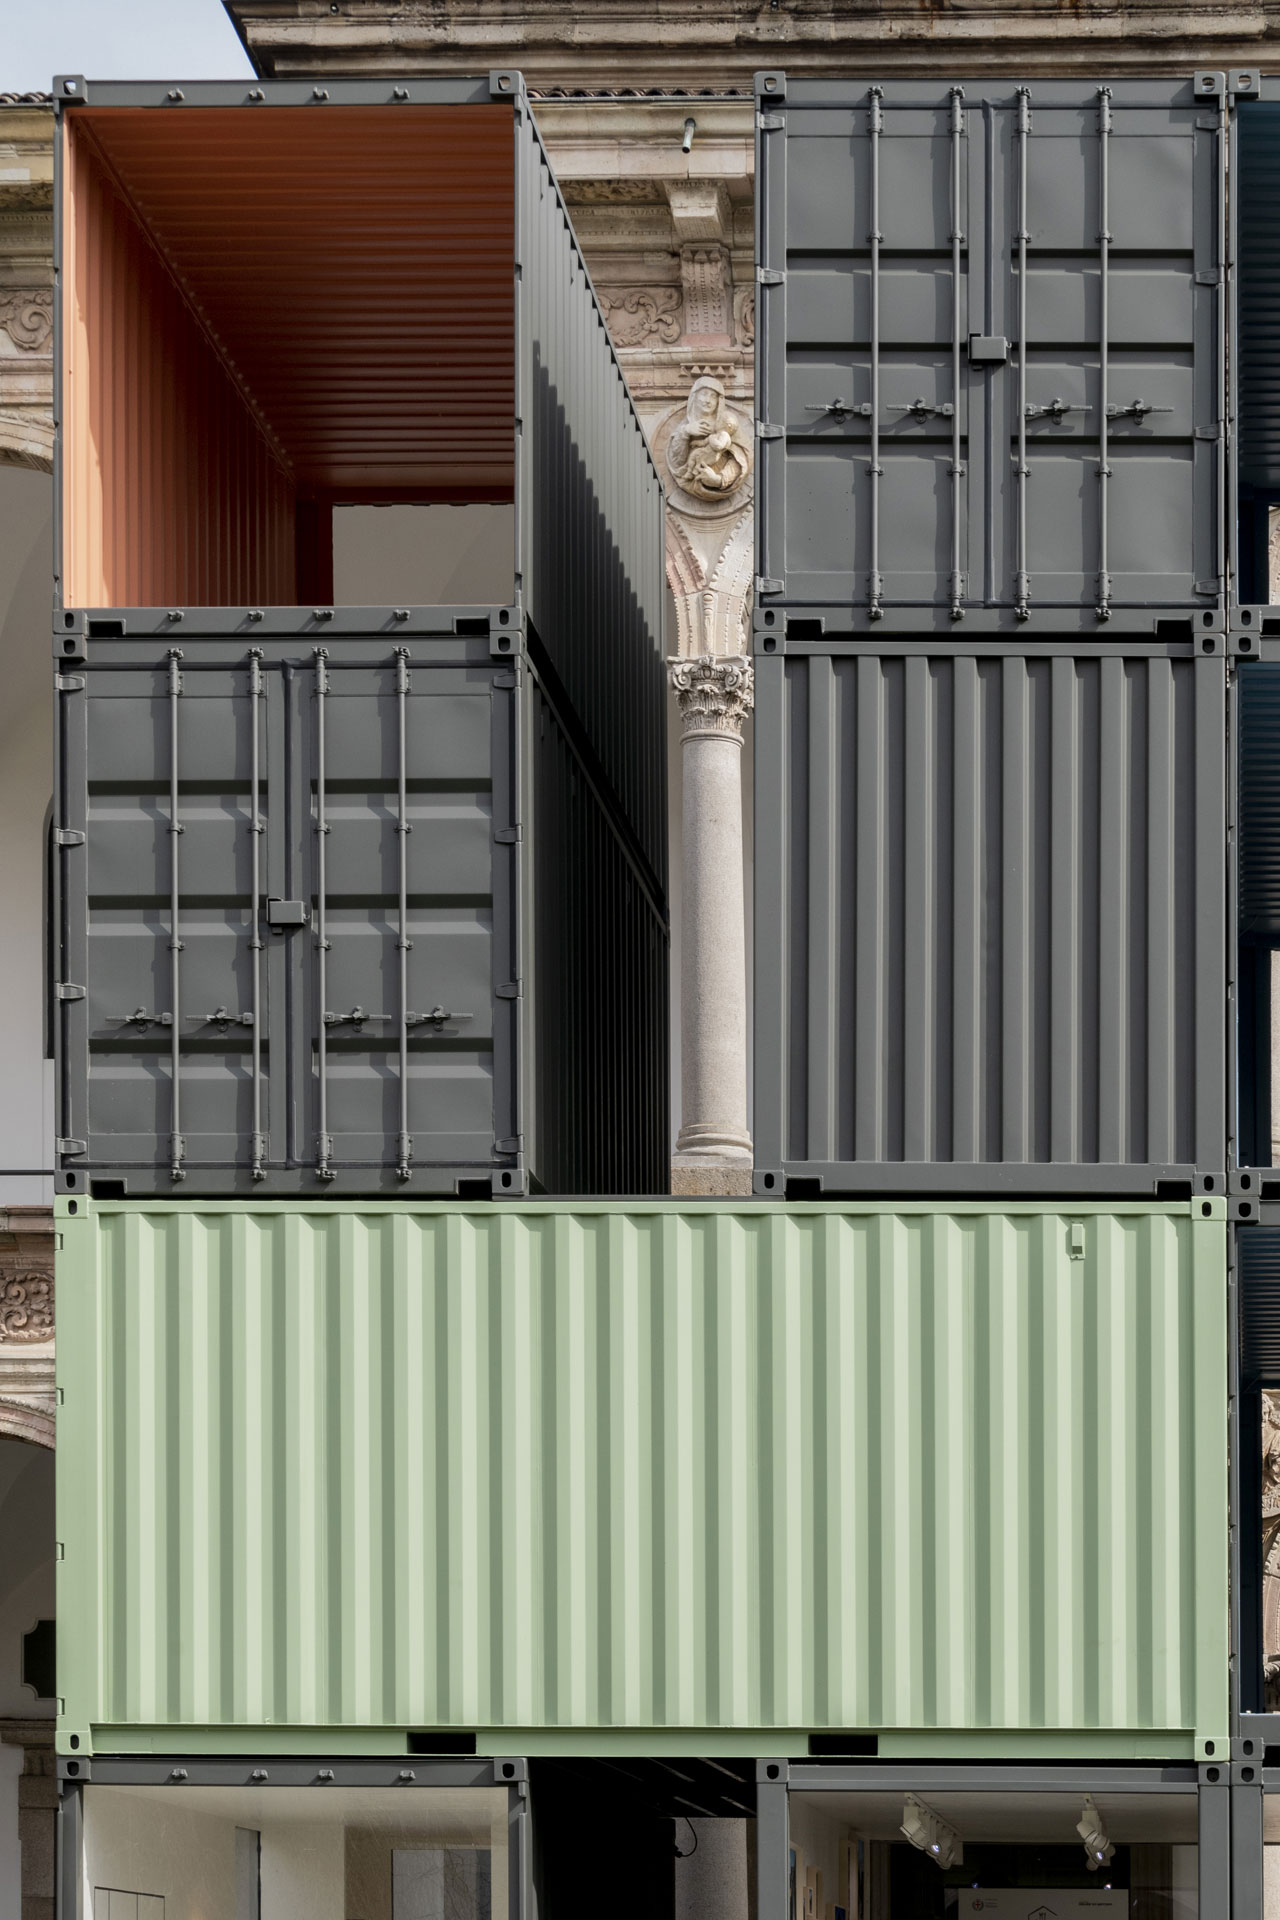 My Dream Home architecture/installation of 12 stacked freight containers (6 x 8,50 x h 12,50 m.) by Piero Lissoni/Lissoni Associati from an idea of Elisabetta Illy and Stefano Guindani in collaboration with DMECO ENGINEERING. (A charity project in favor of Francesca Rava Foundation N.P.H. Italy Onlus). Exhibited at the INTERNI HOUSE IN MOTION exhibition. Photo by Saverio Lombardi Vallauri, Courtesy of INTERNI magazine.